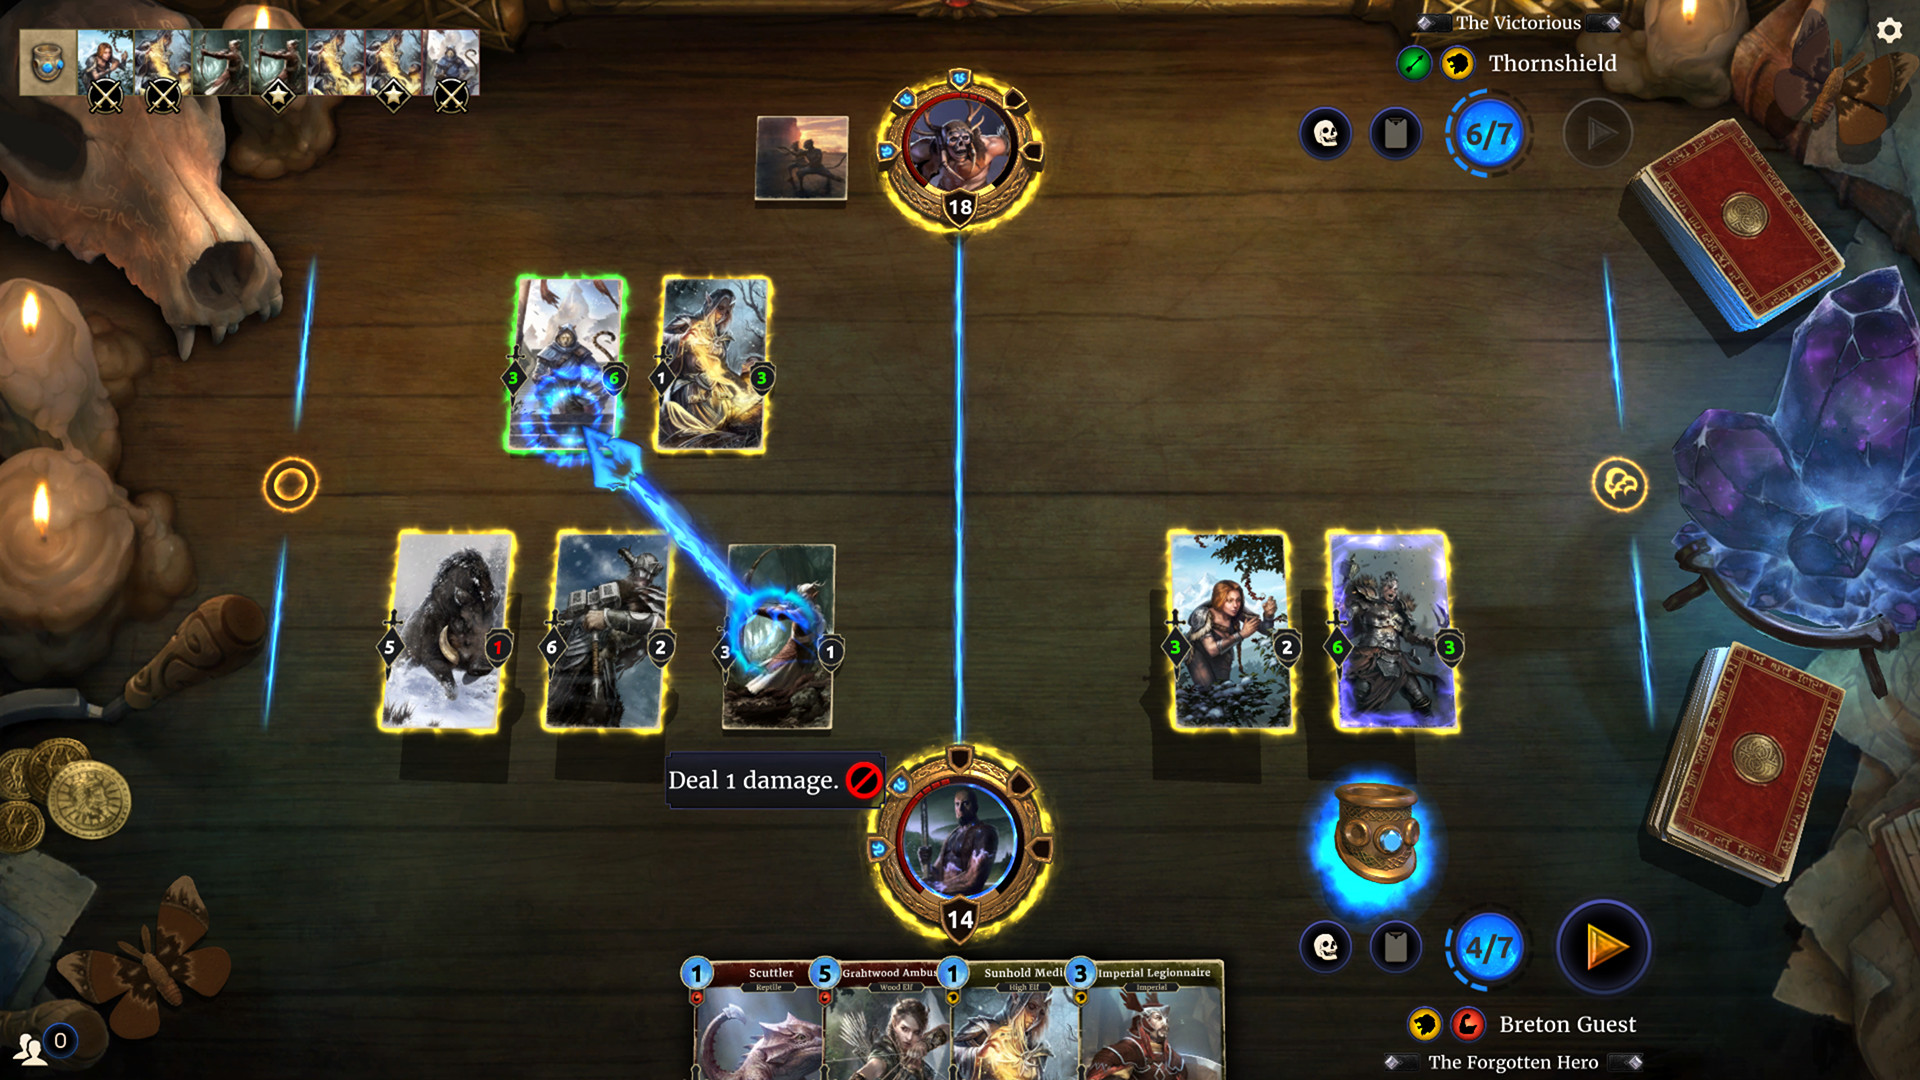 The Elder Scrolls: Legends System Requirements - Can I Run It? - PCGameBenchmark